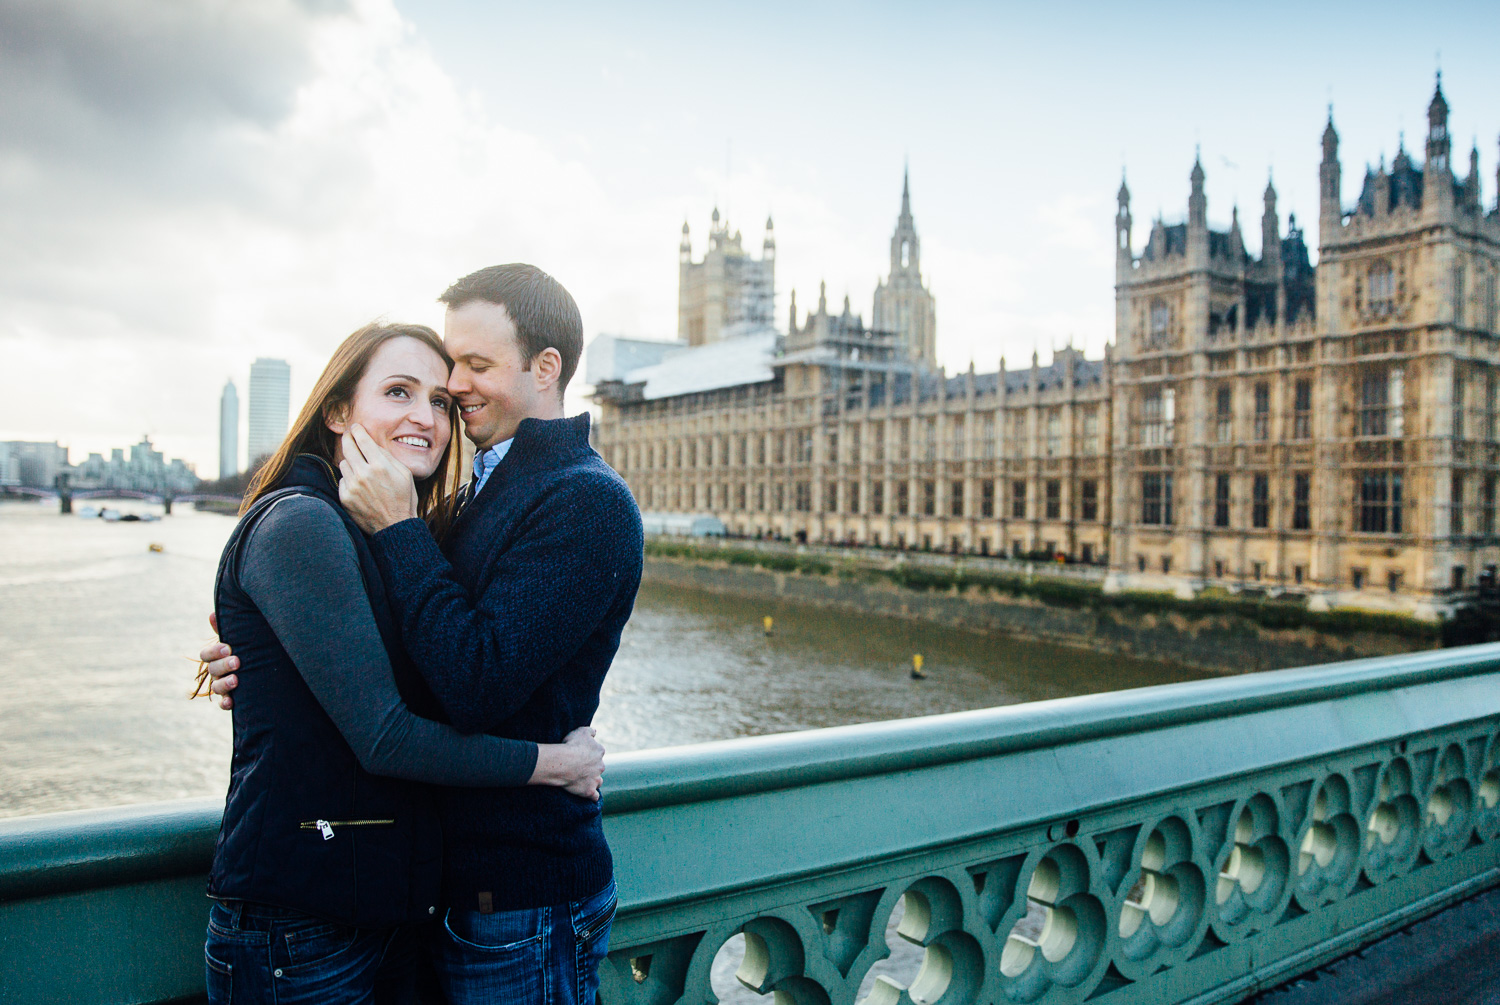 couple on bridge with london in background. Engagement photography london.